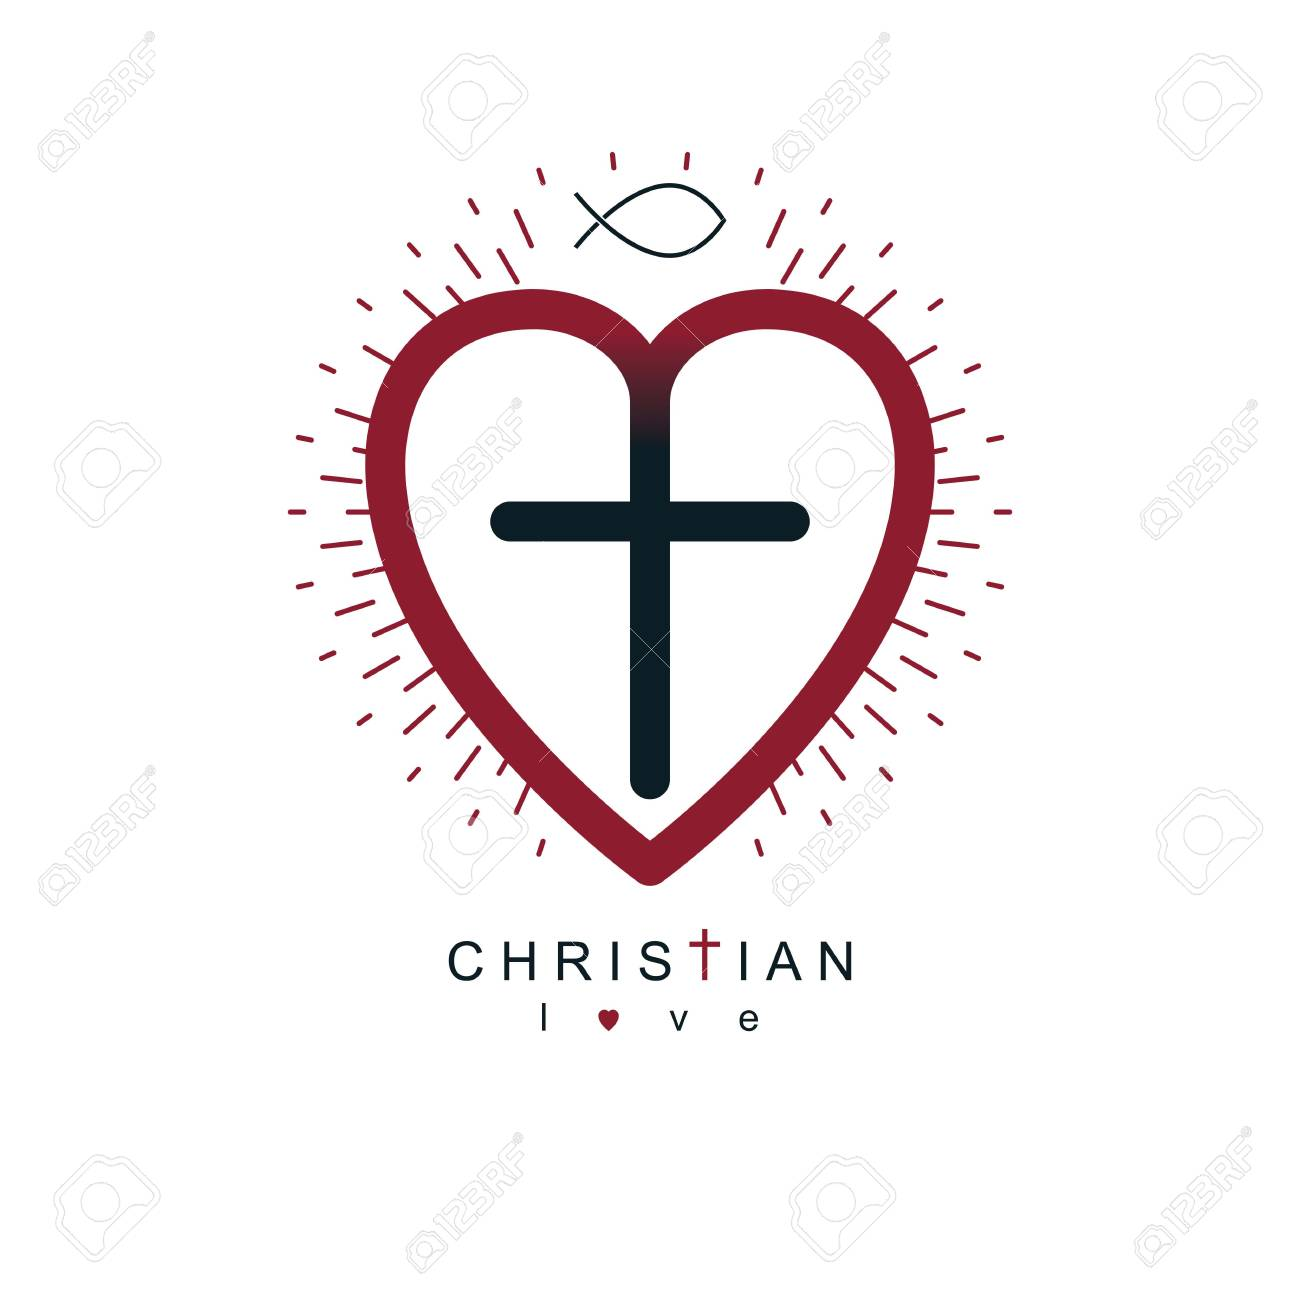 God Christian Love conceptual logo design combined with Christian...